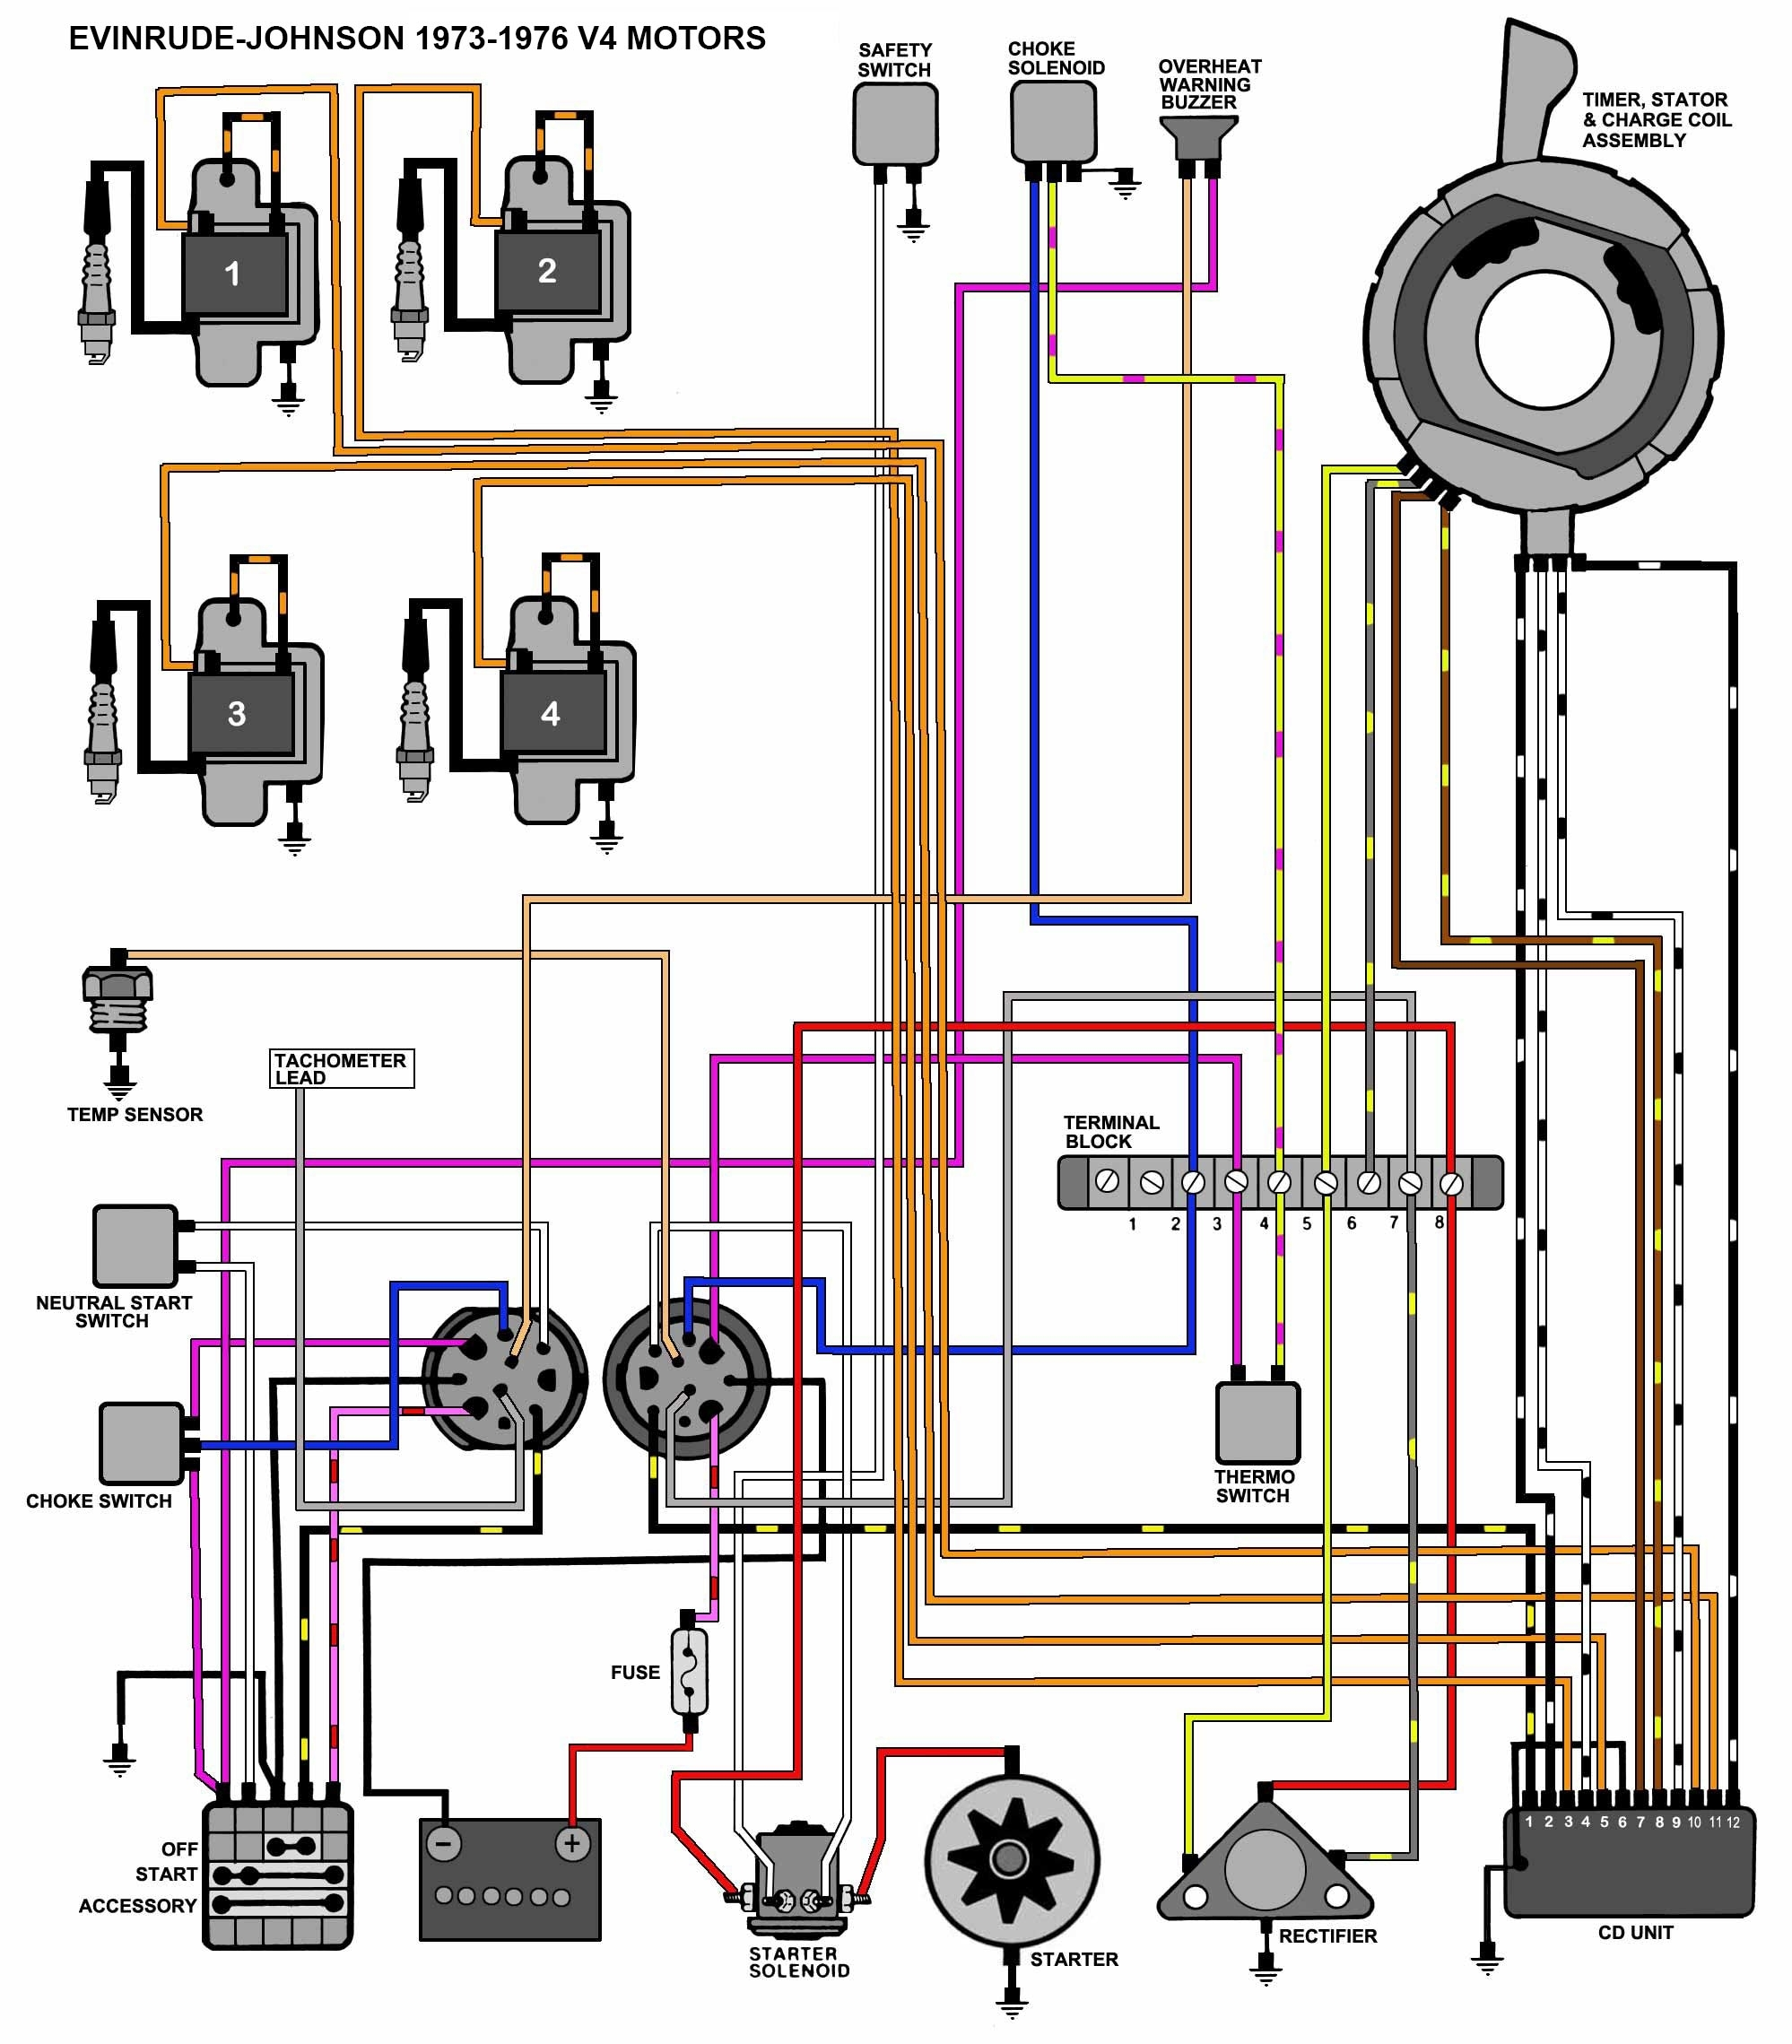 evinrude ignition switch wiring diagram with 1969 omc 55 wiring throughout 70 hp evinrude wiring diagram?resize\=665%2C759\&ssl\=1 1992 johnson 40 hp outboard wiring diagram 1992 wiring diagrams  at mifinder.co